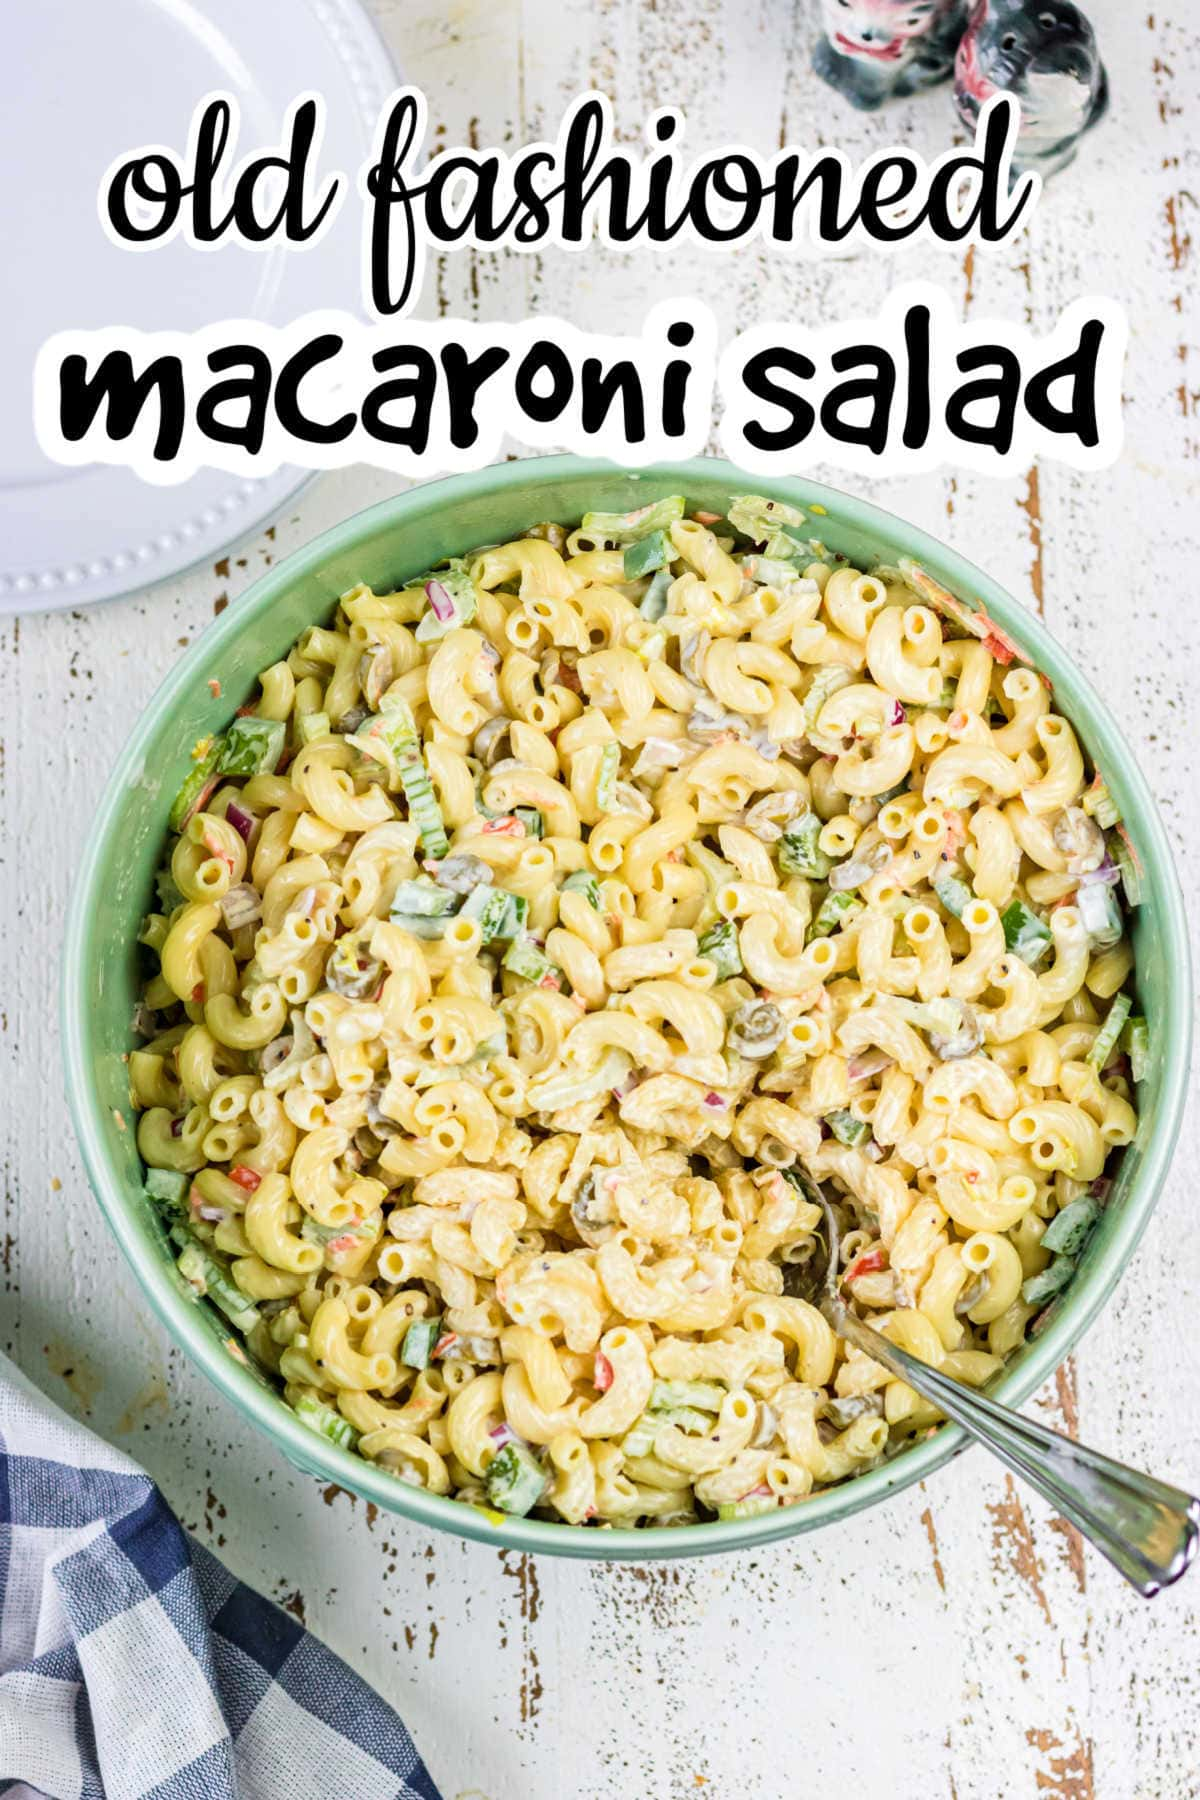 Title image - overhead view of macaroni salad in a green bowl with title text overlay.